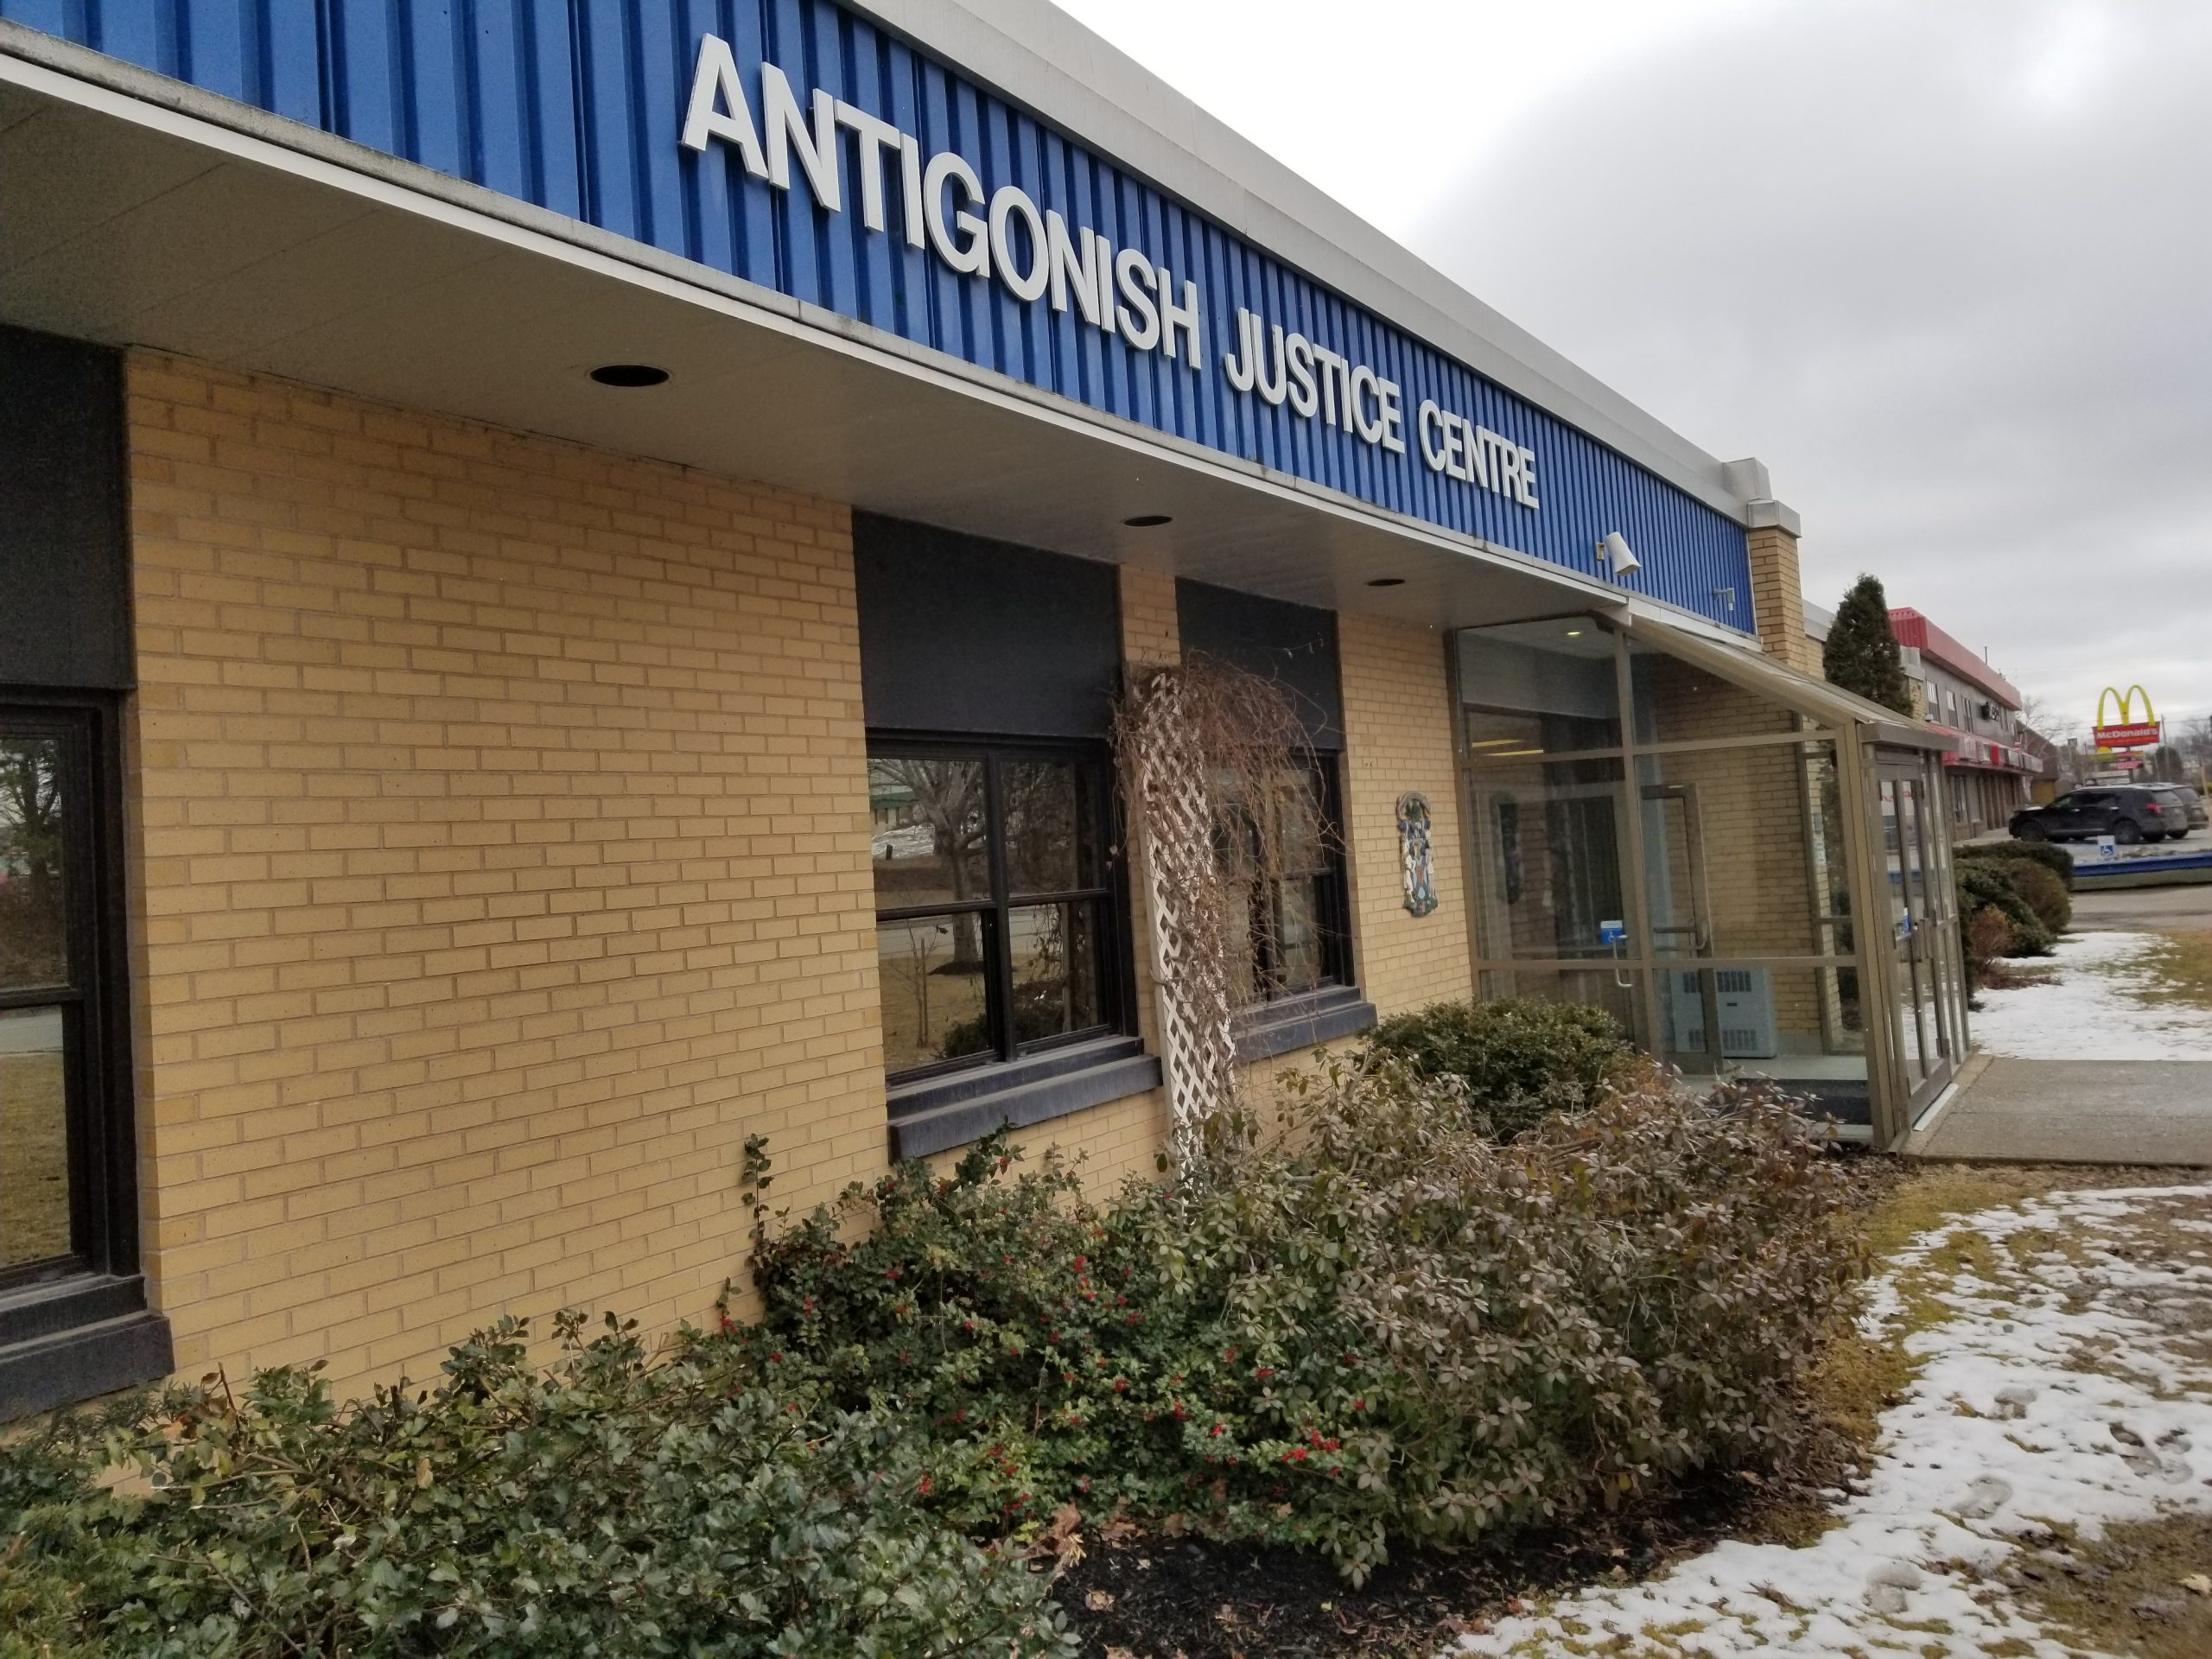 Man charged following reported sexual assault in Antigonish expected in court